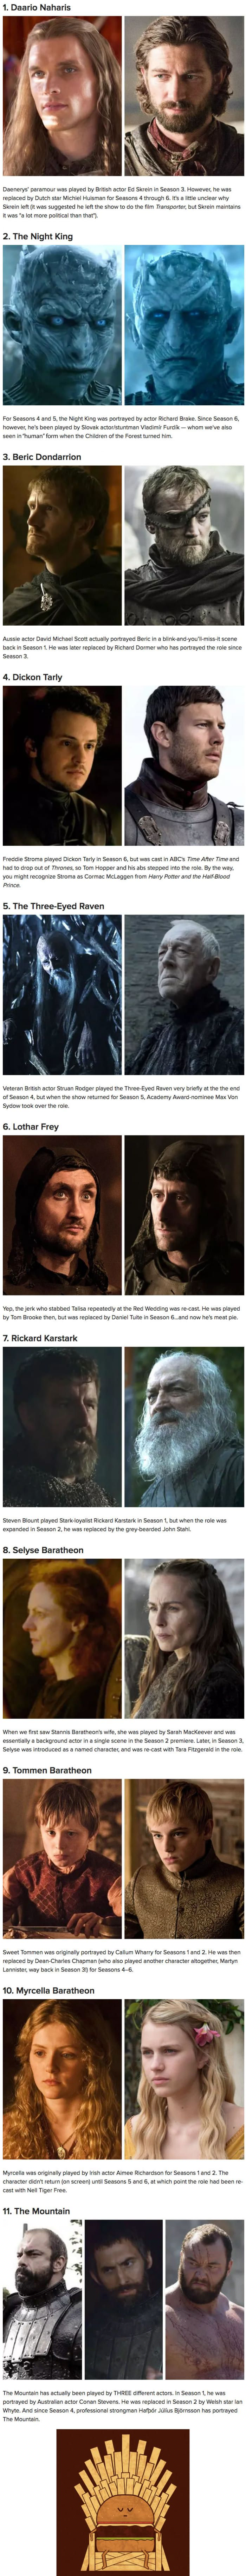 "11 ""Game Of Thrones"" Characters that were re-casted"